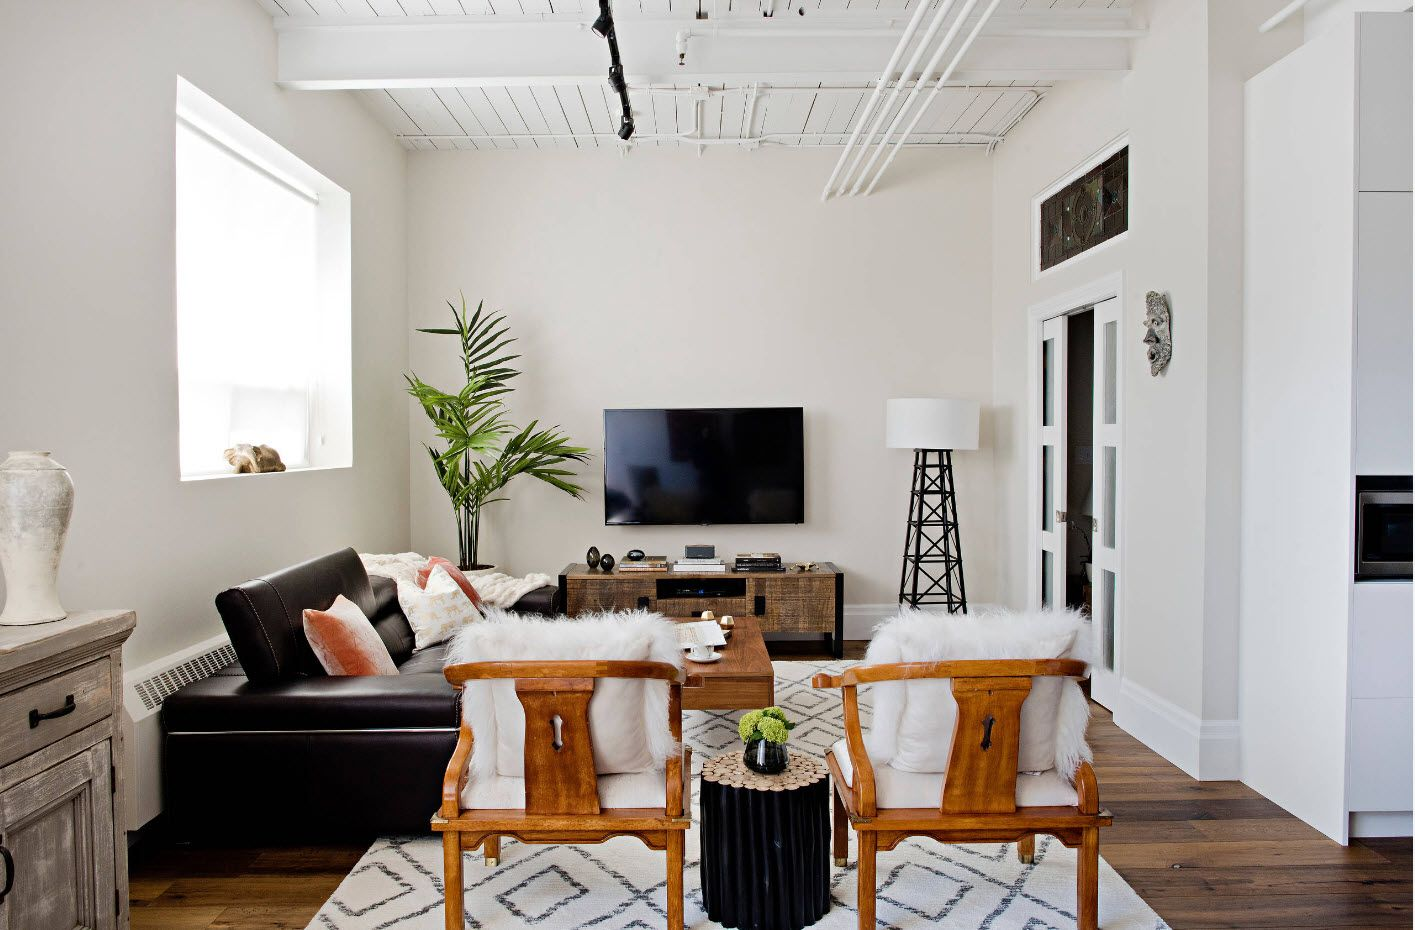 White wall colored room with TV-set on the wall as black tint